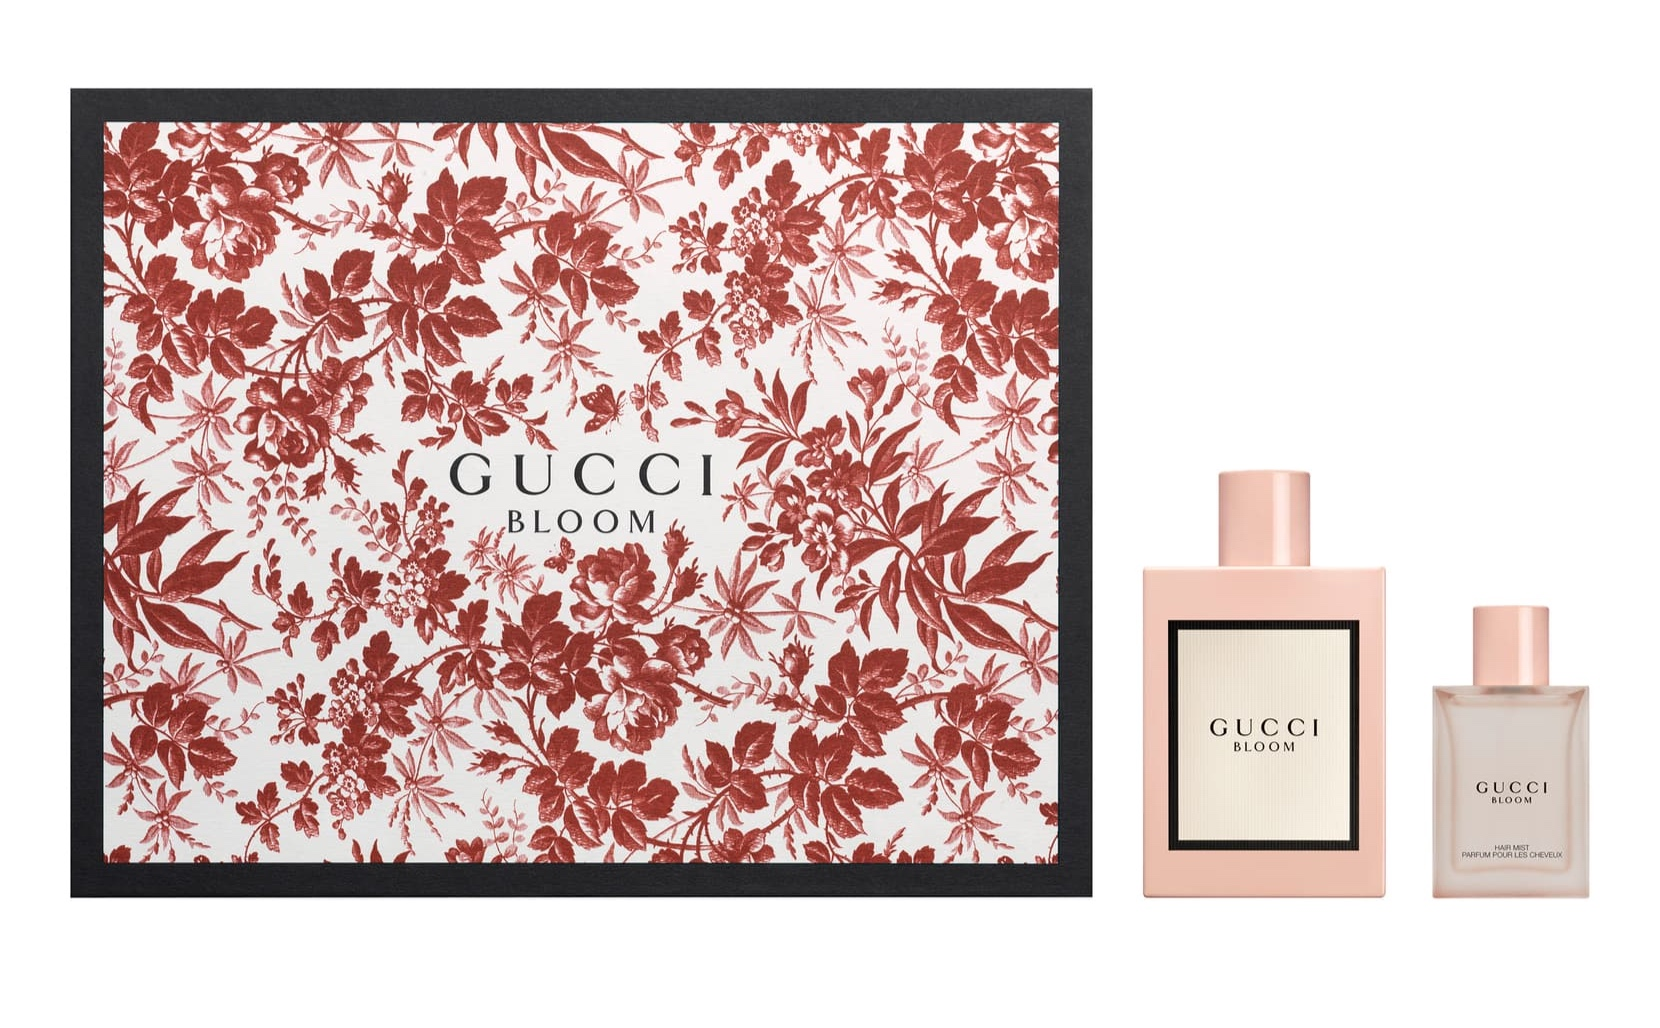 BECAUSE WE CAN'T RESIST THIS  SCENT  (AND ITS PRETTY PACKAGING)!